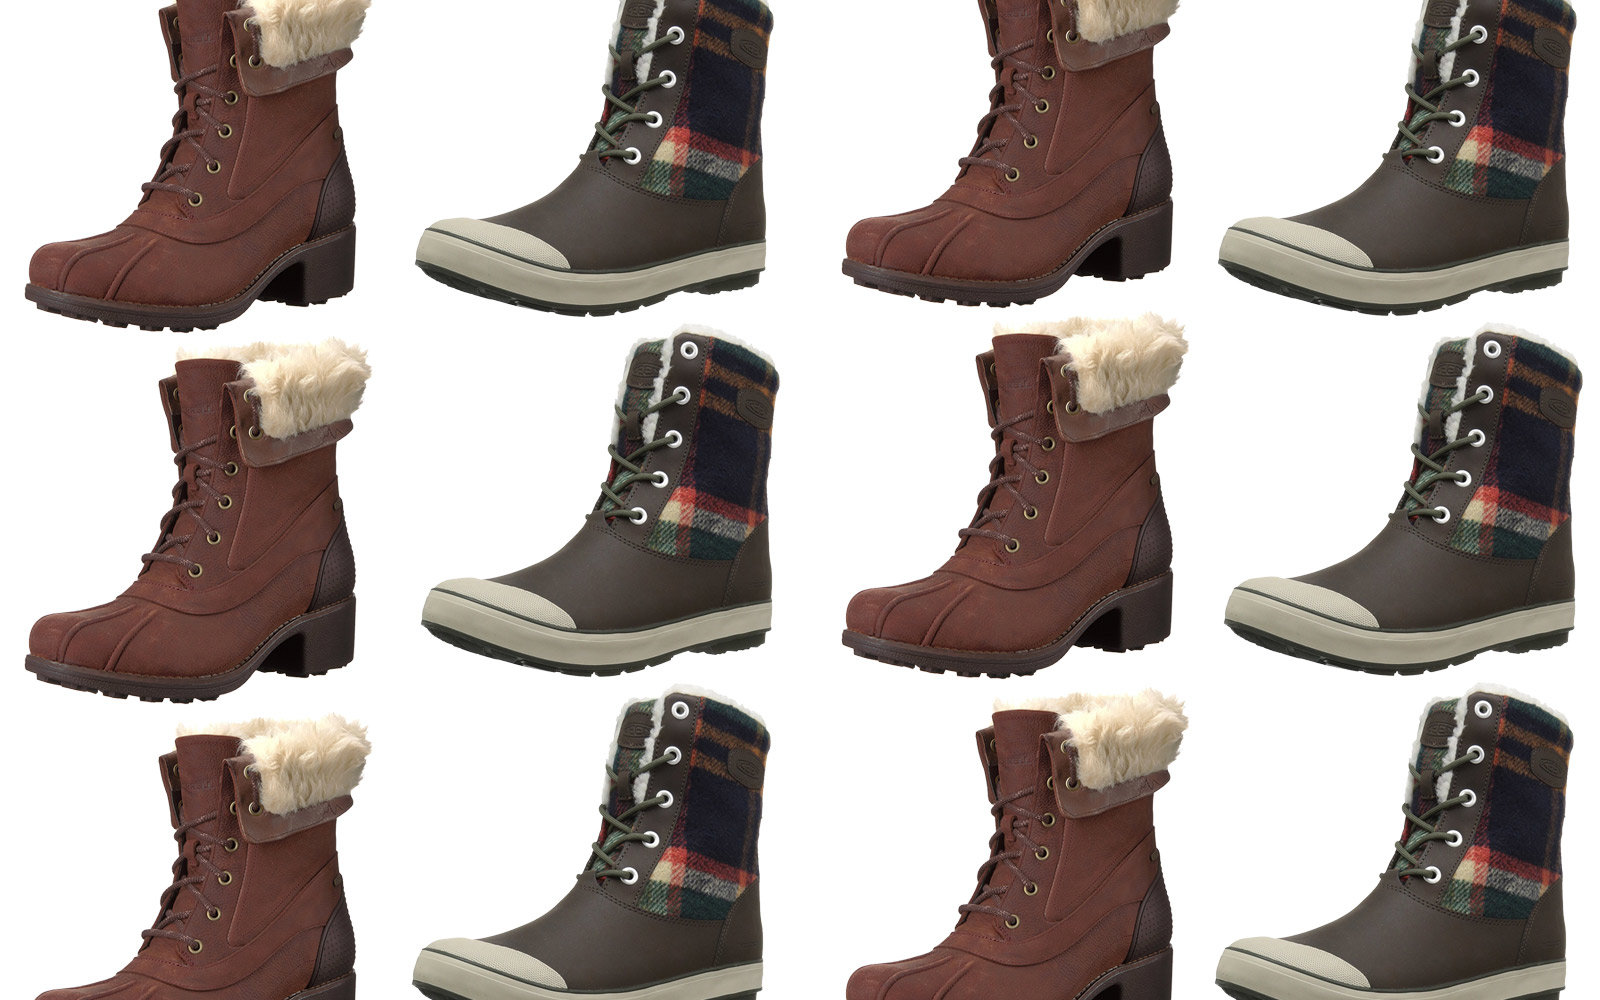 Proof This Cold-Weather Shoe Trend Has Staying Power for Summer